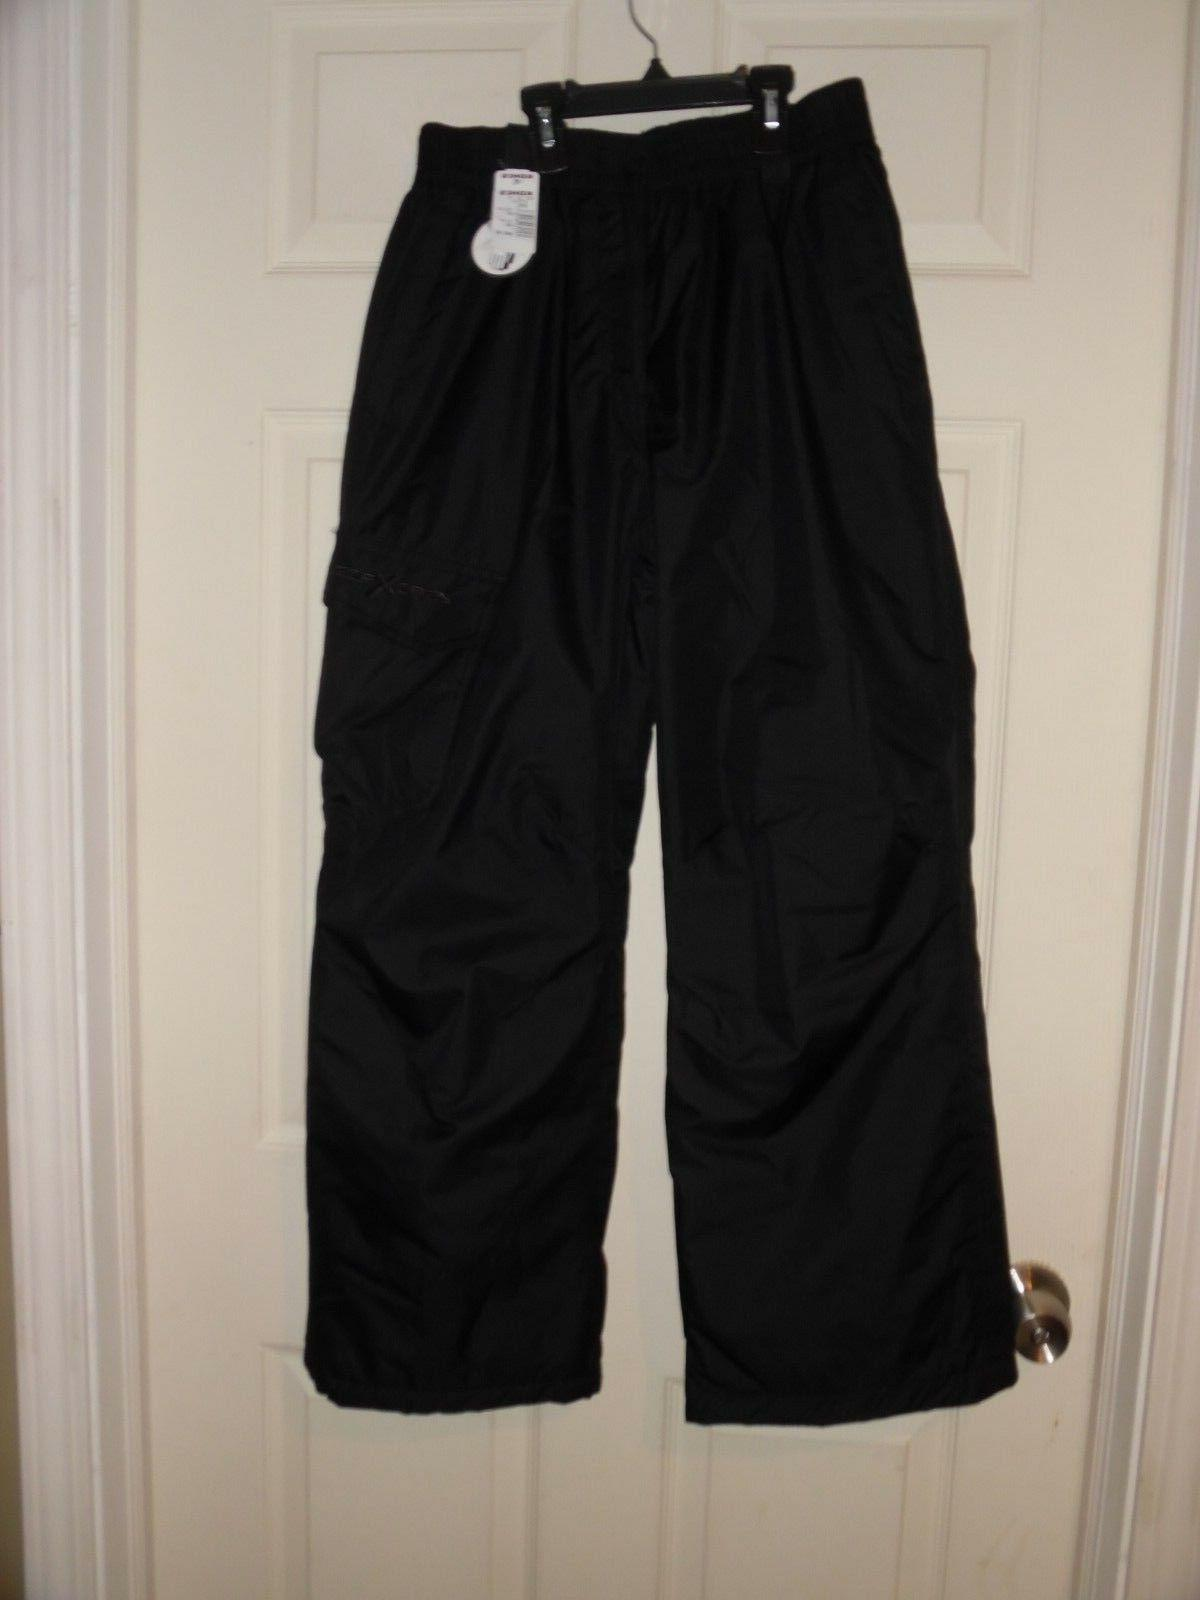 NWT Youth Size Large 14/16 Zero Xposur Snow Ski Pants Black